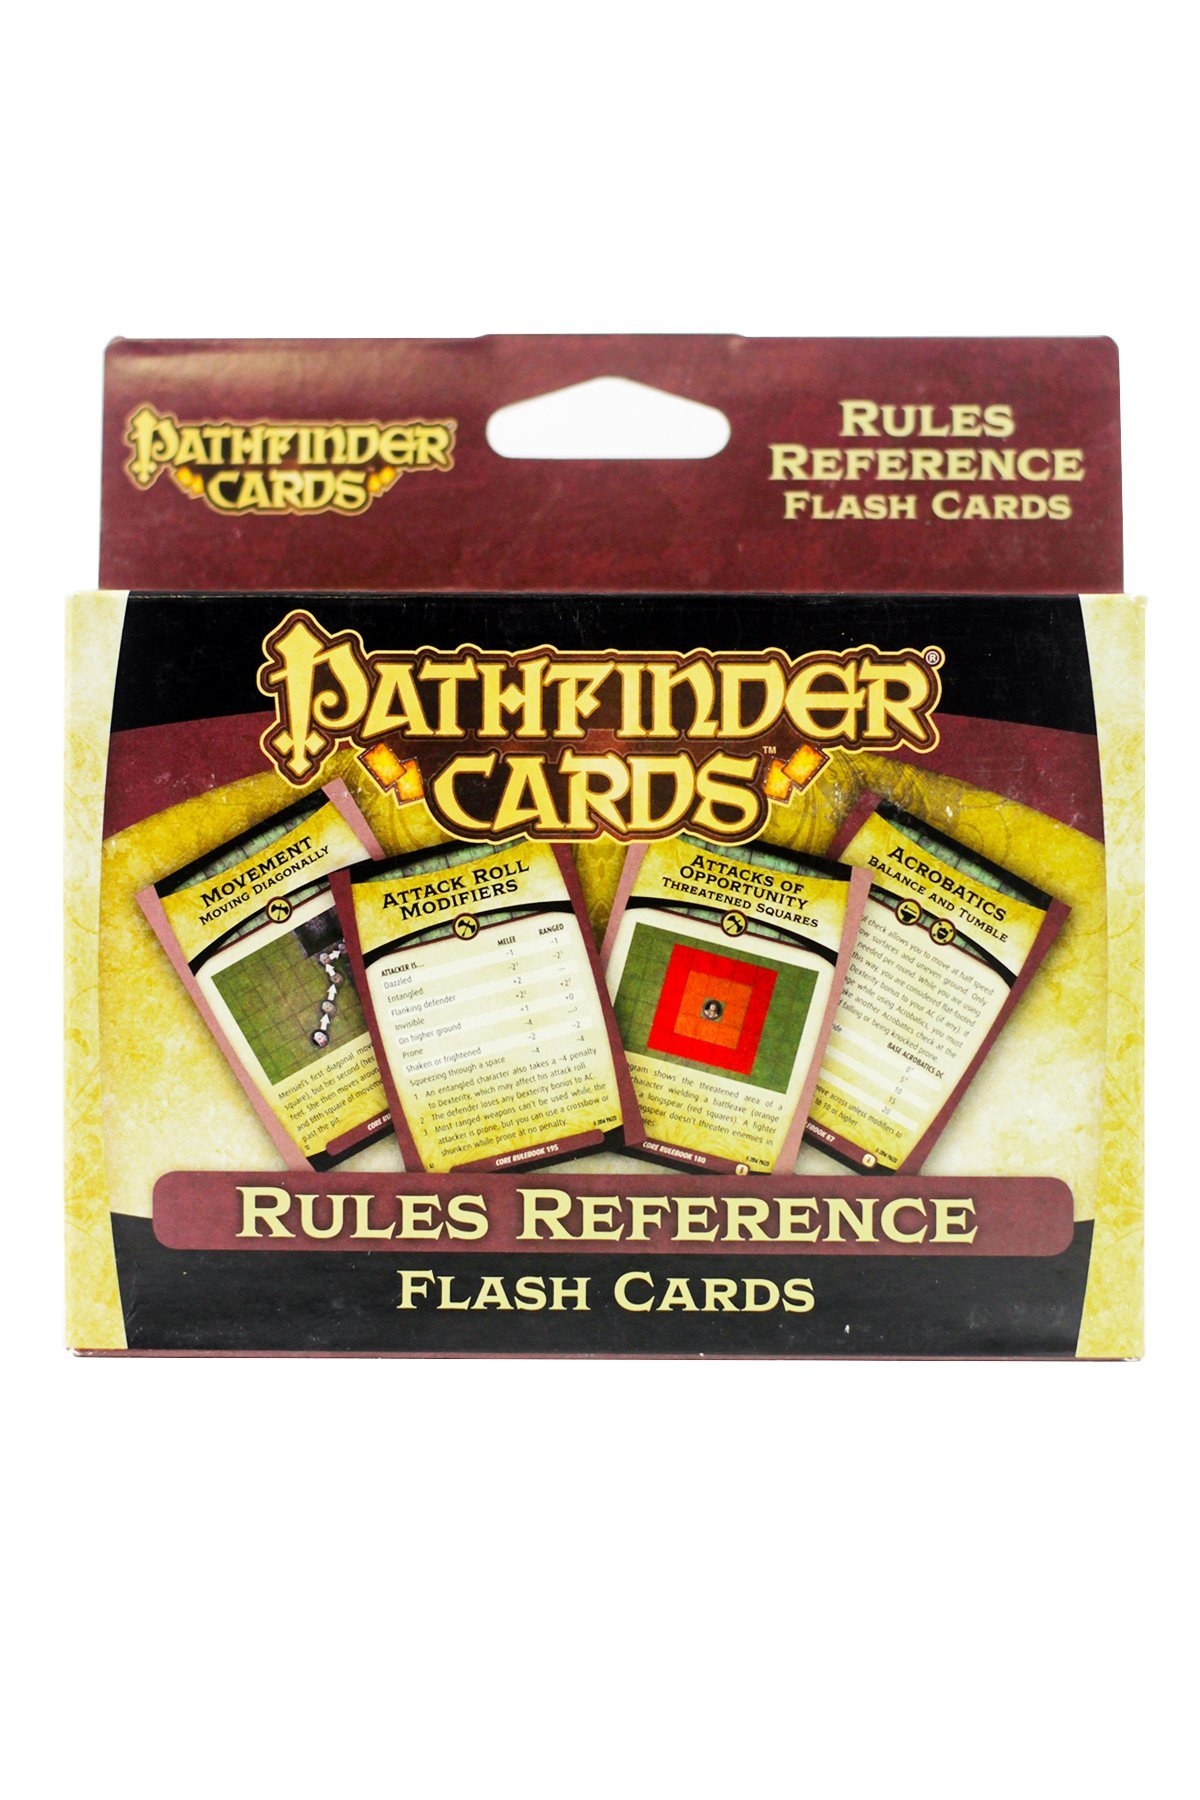 Pathfinder Cards: Rules Reference Flash Cards Double Deck by Paizo Inc.